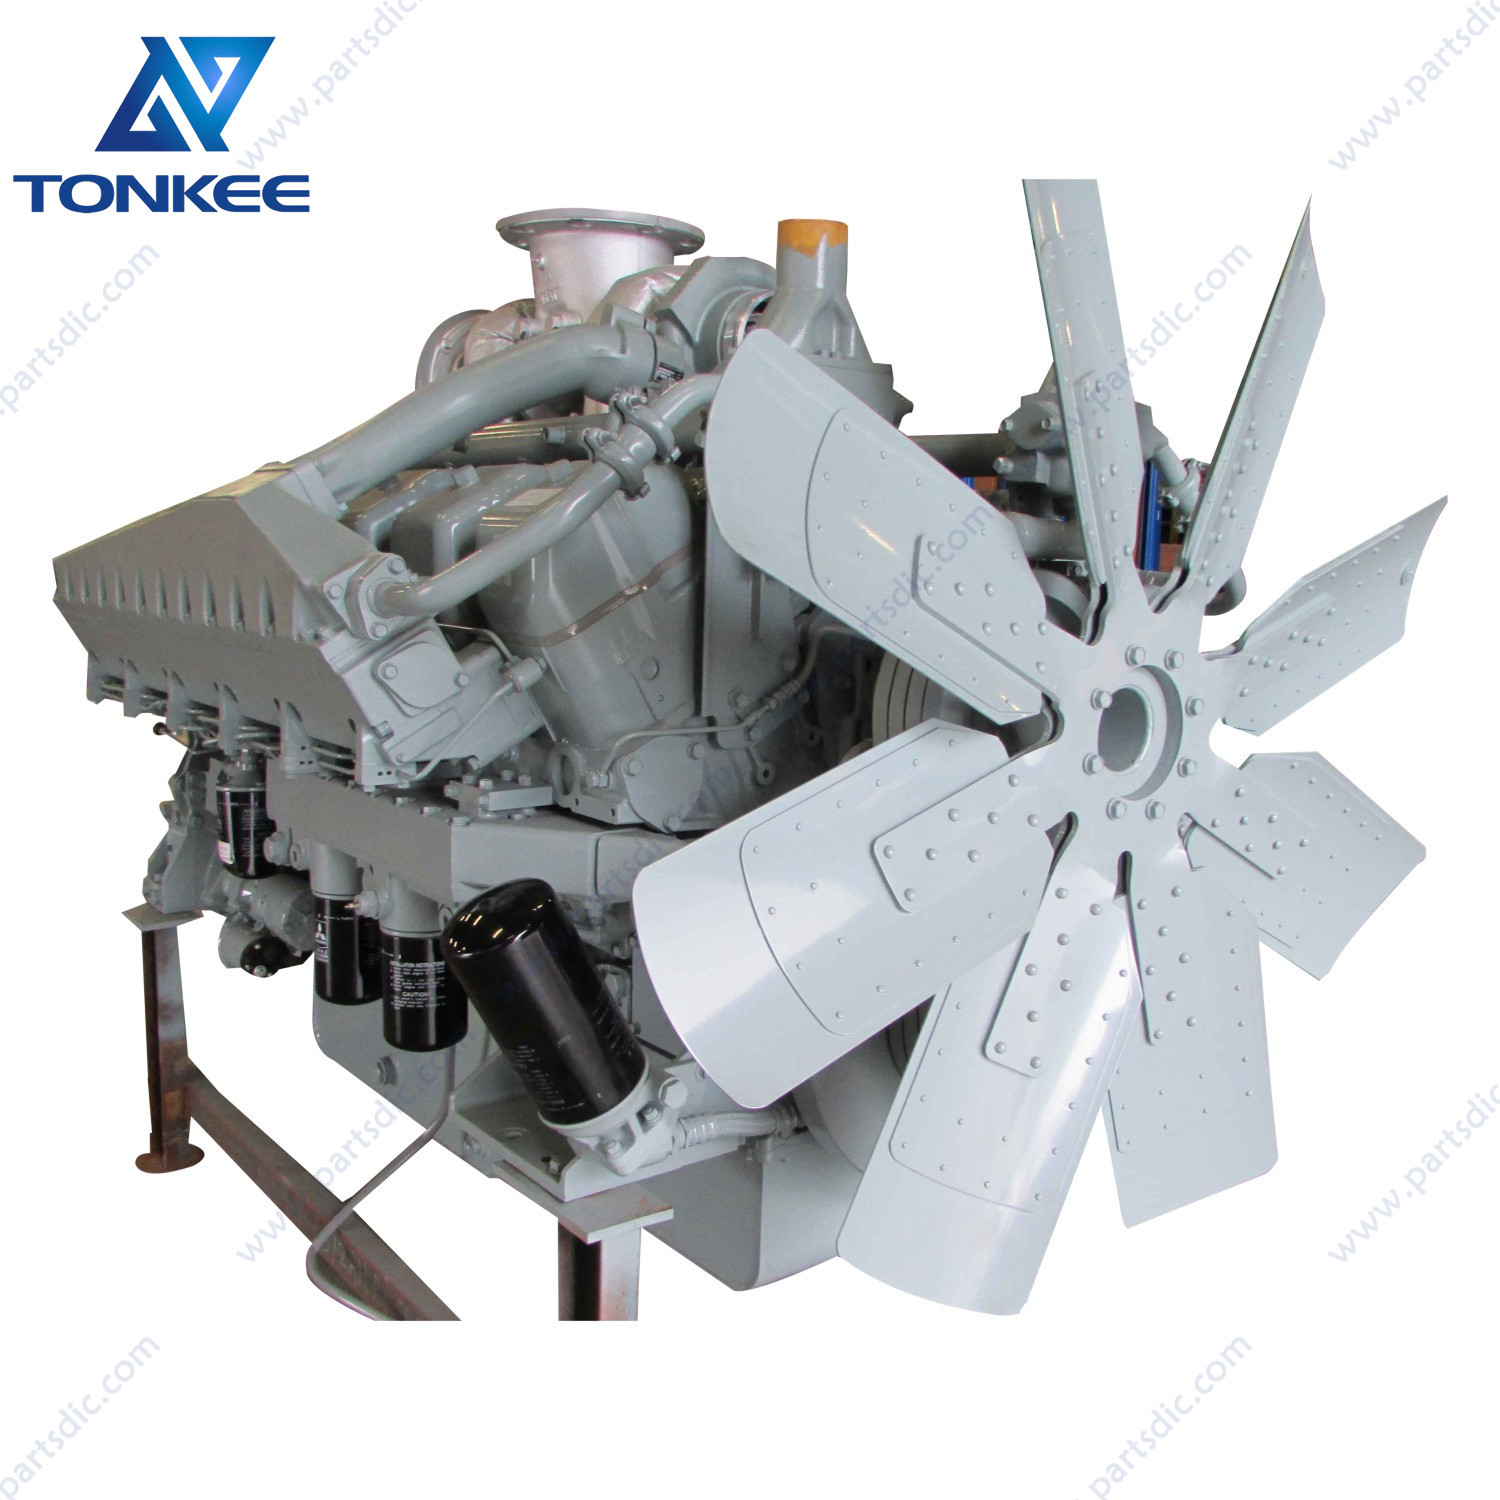 9237308 S12A2 S12A2-Y1TAA1 S12A2-PTA diesel engine assy Shovel excavator EX1900 EX1900-5 complete diesel engine assy suitable